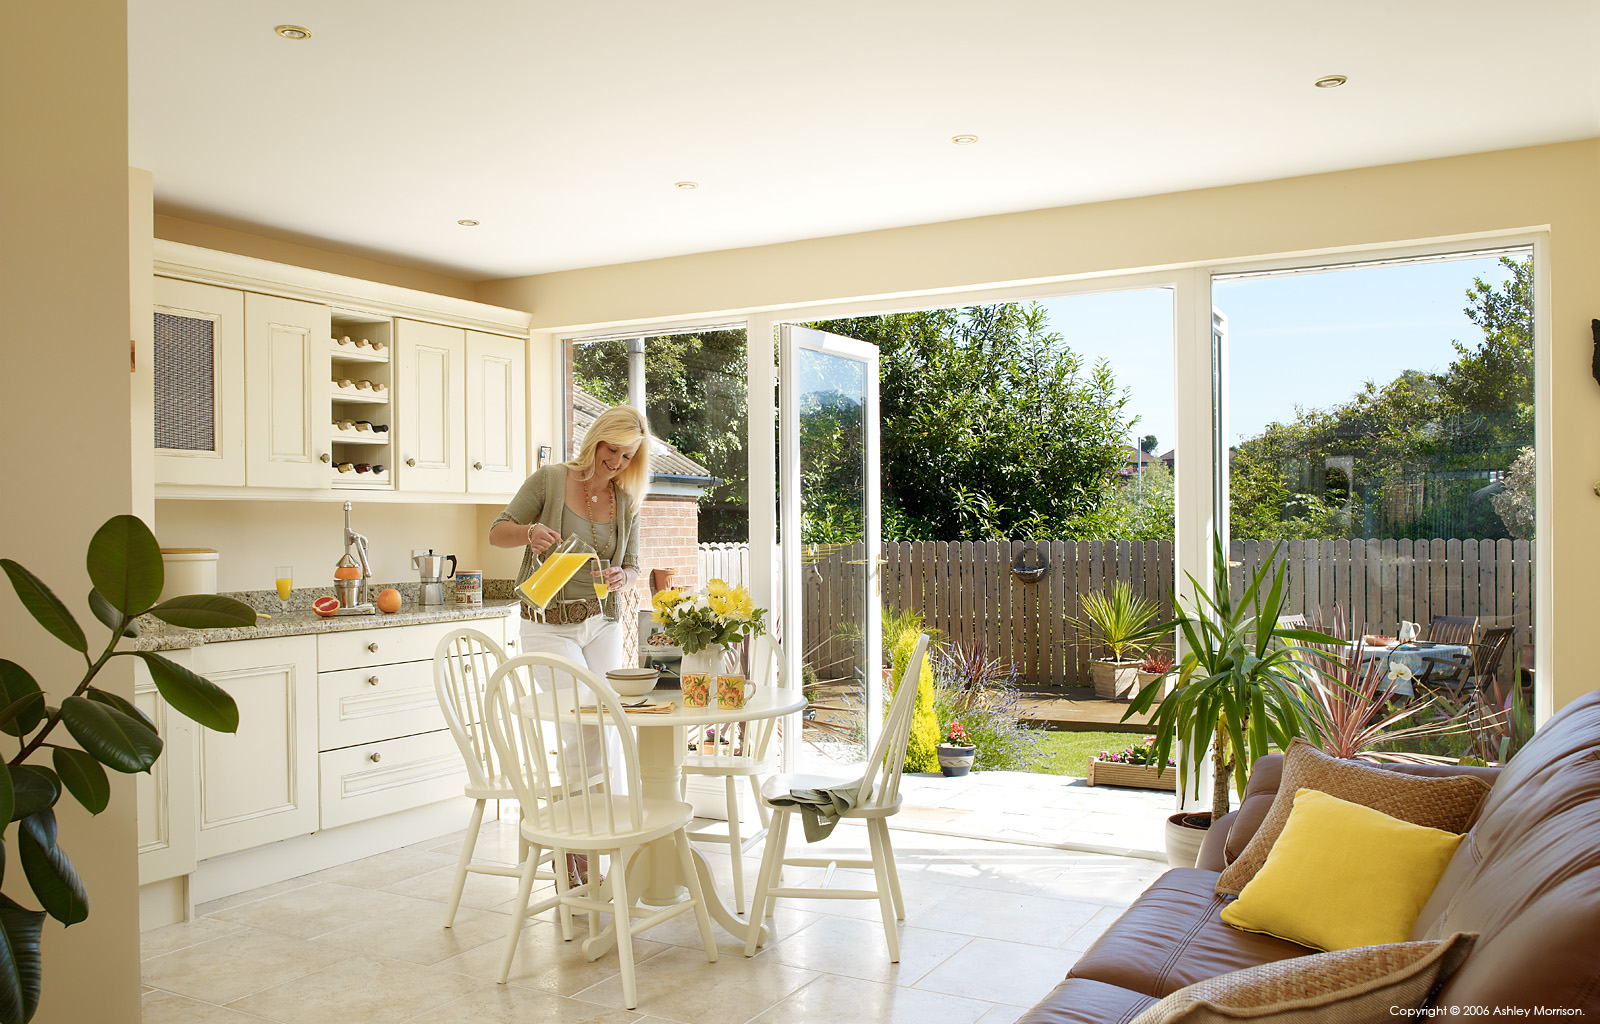 Shakila Cowan in the kitchen extension of her transformed 1950s semi detached house in Belfast.